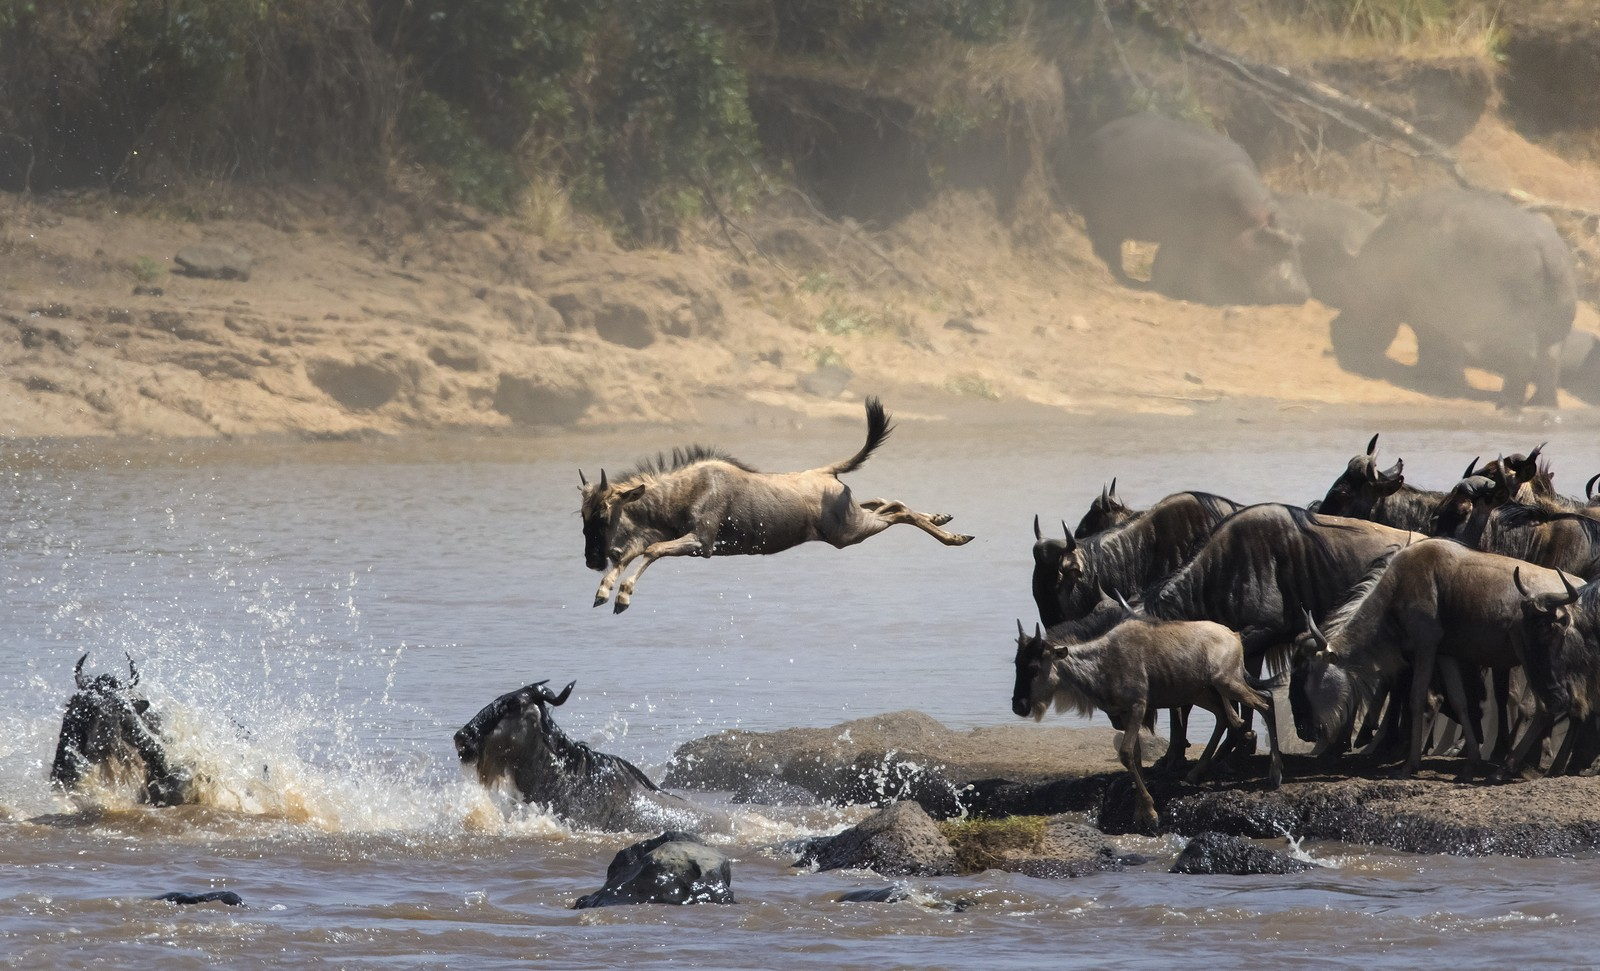 Wildebeest in the Great Migration